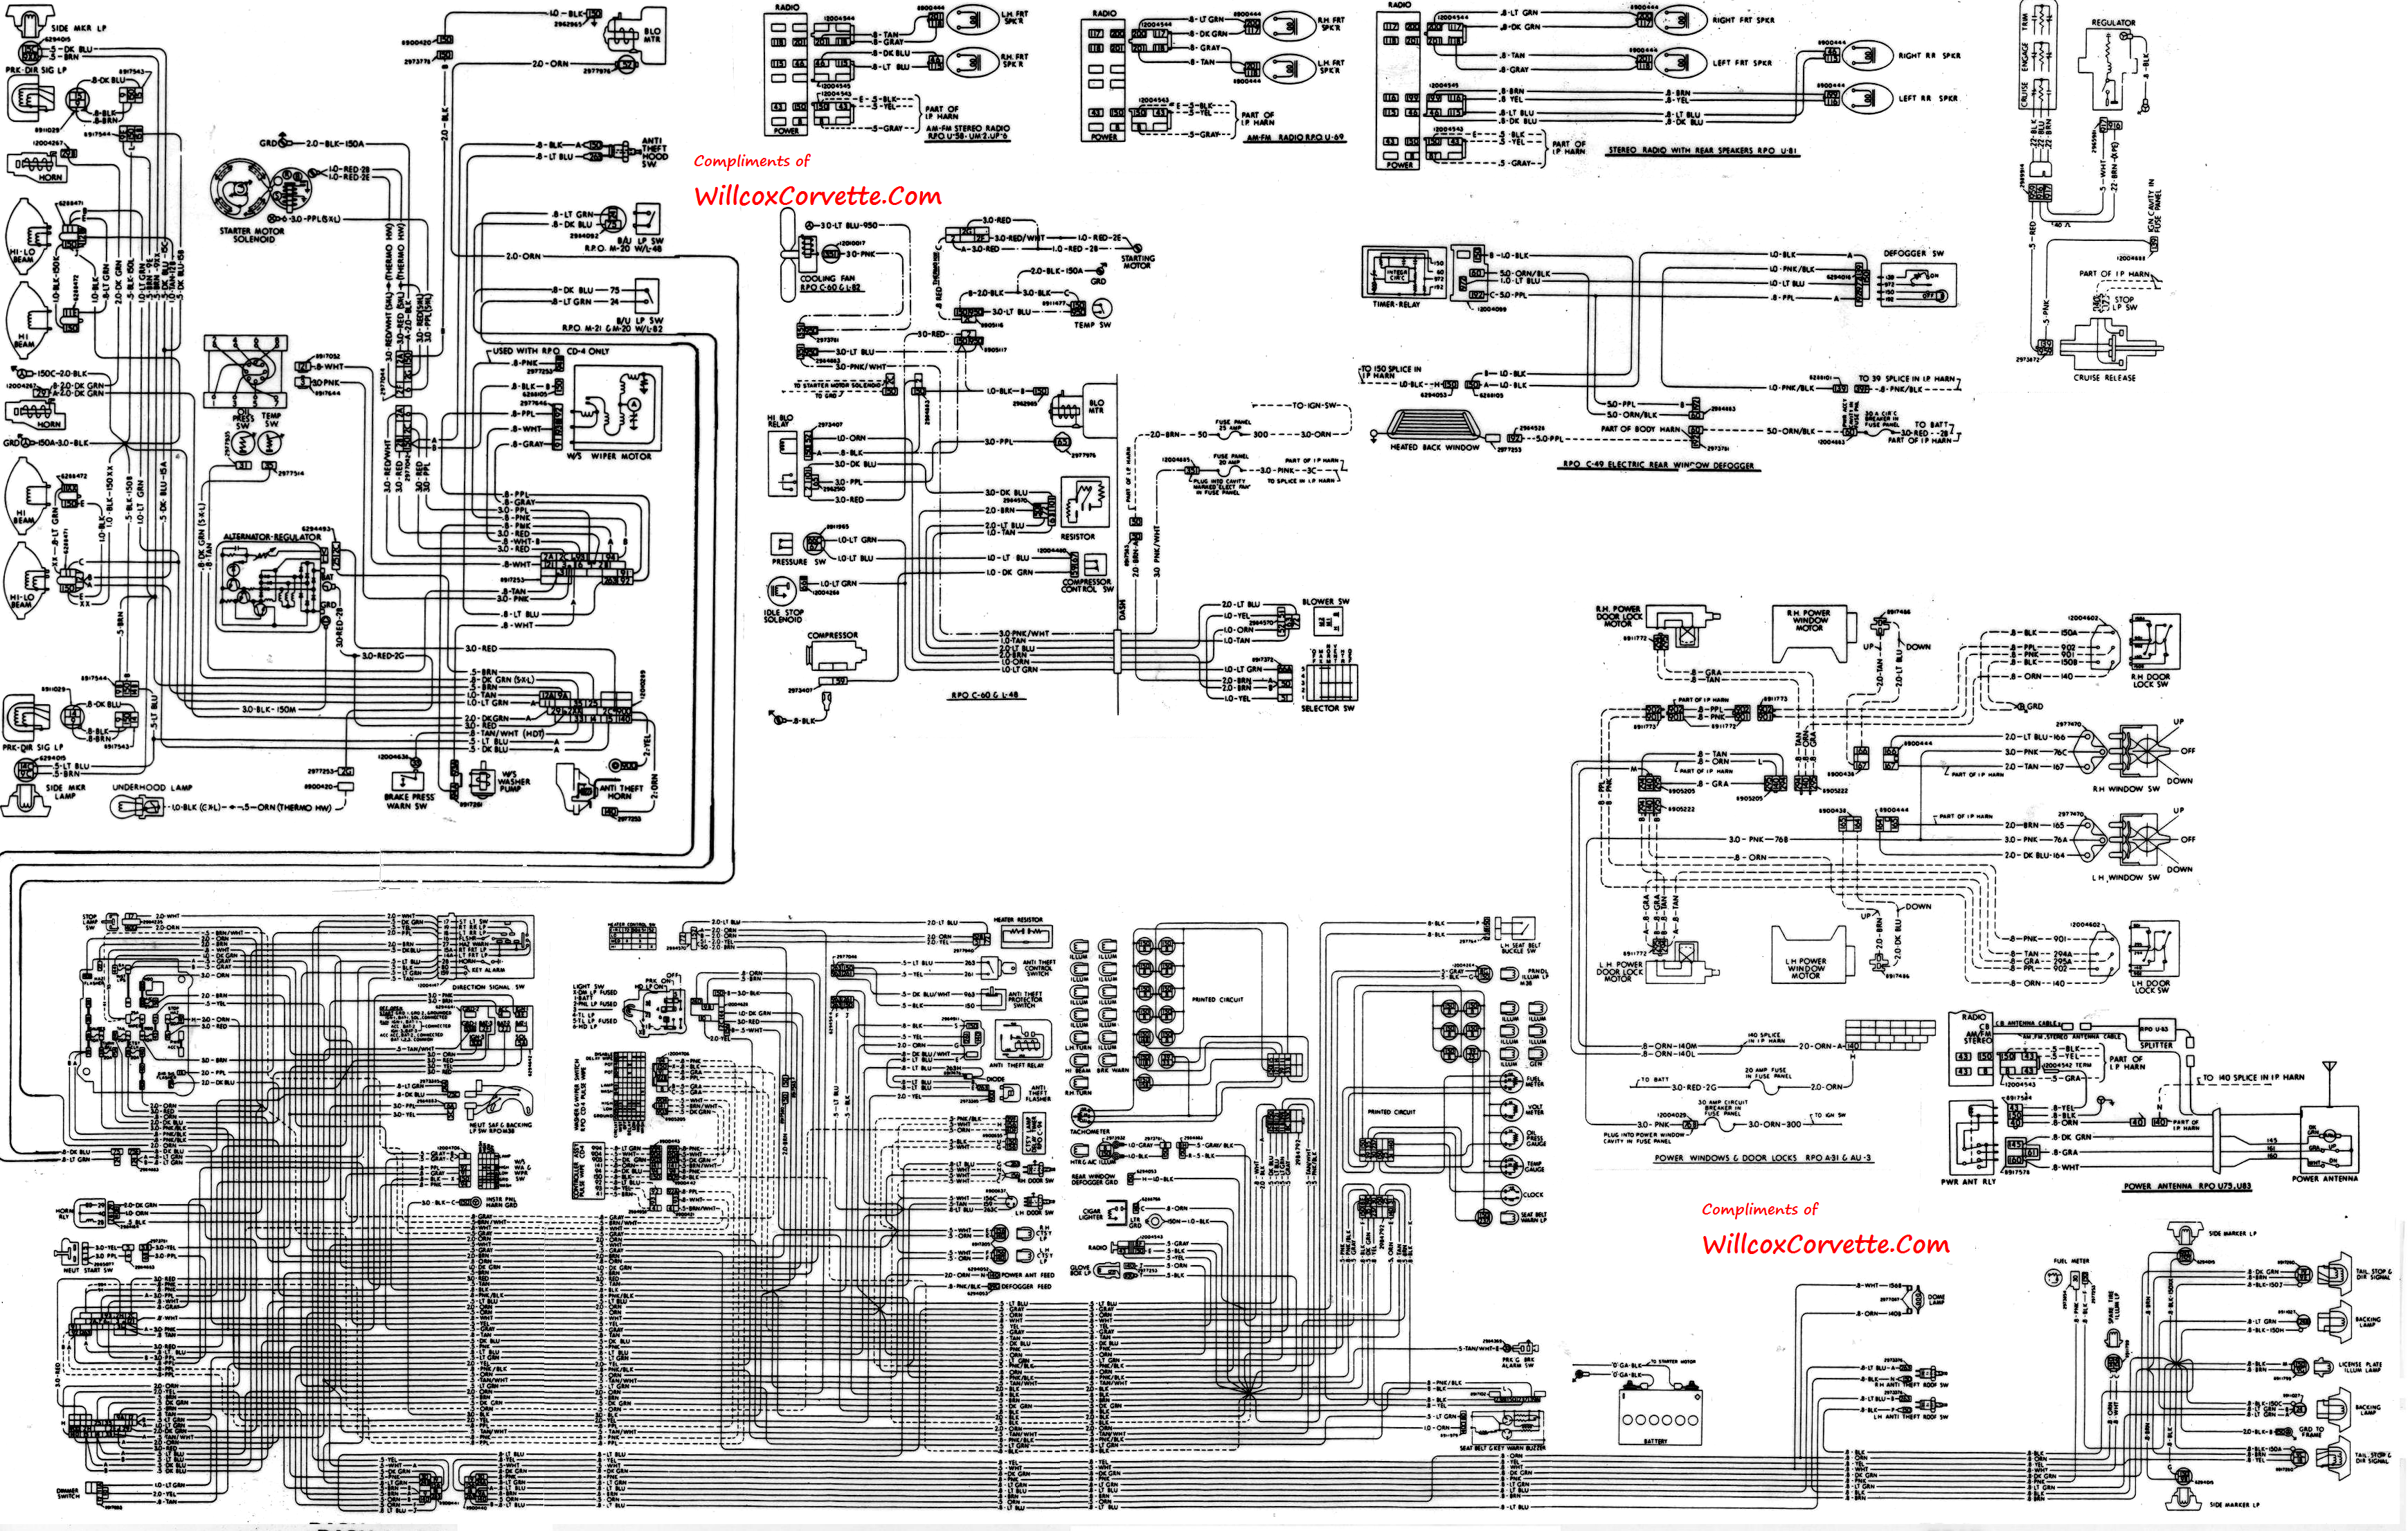 1979 wire diagram 1979 corvette wiring diagram aux fan wiring diagram 1979 corvette 1979 Corvette Fuse Box Diagram at bayanpartner.co